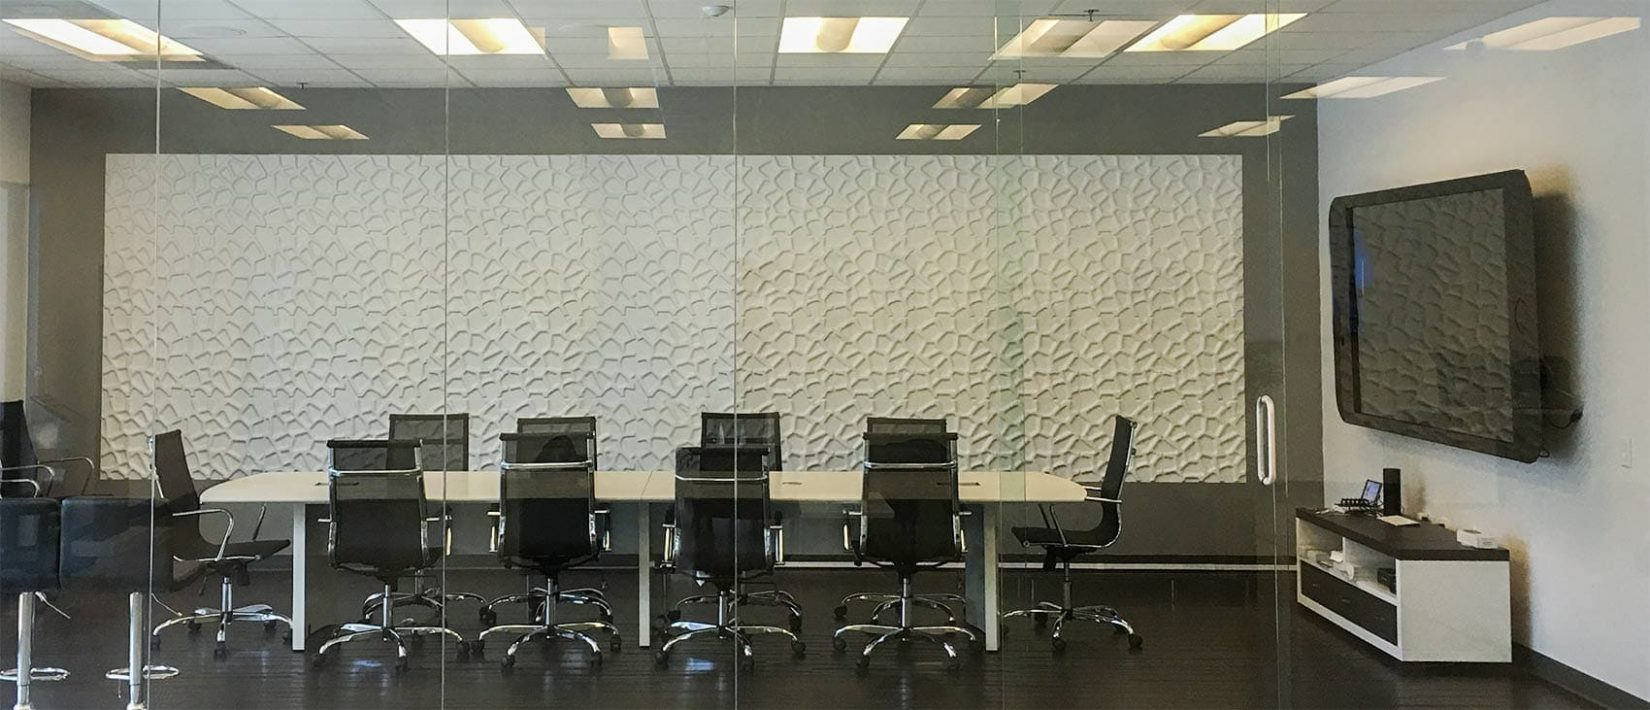 Custom-Conference-Rooms-By-Crunchy-Tech